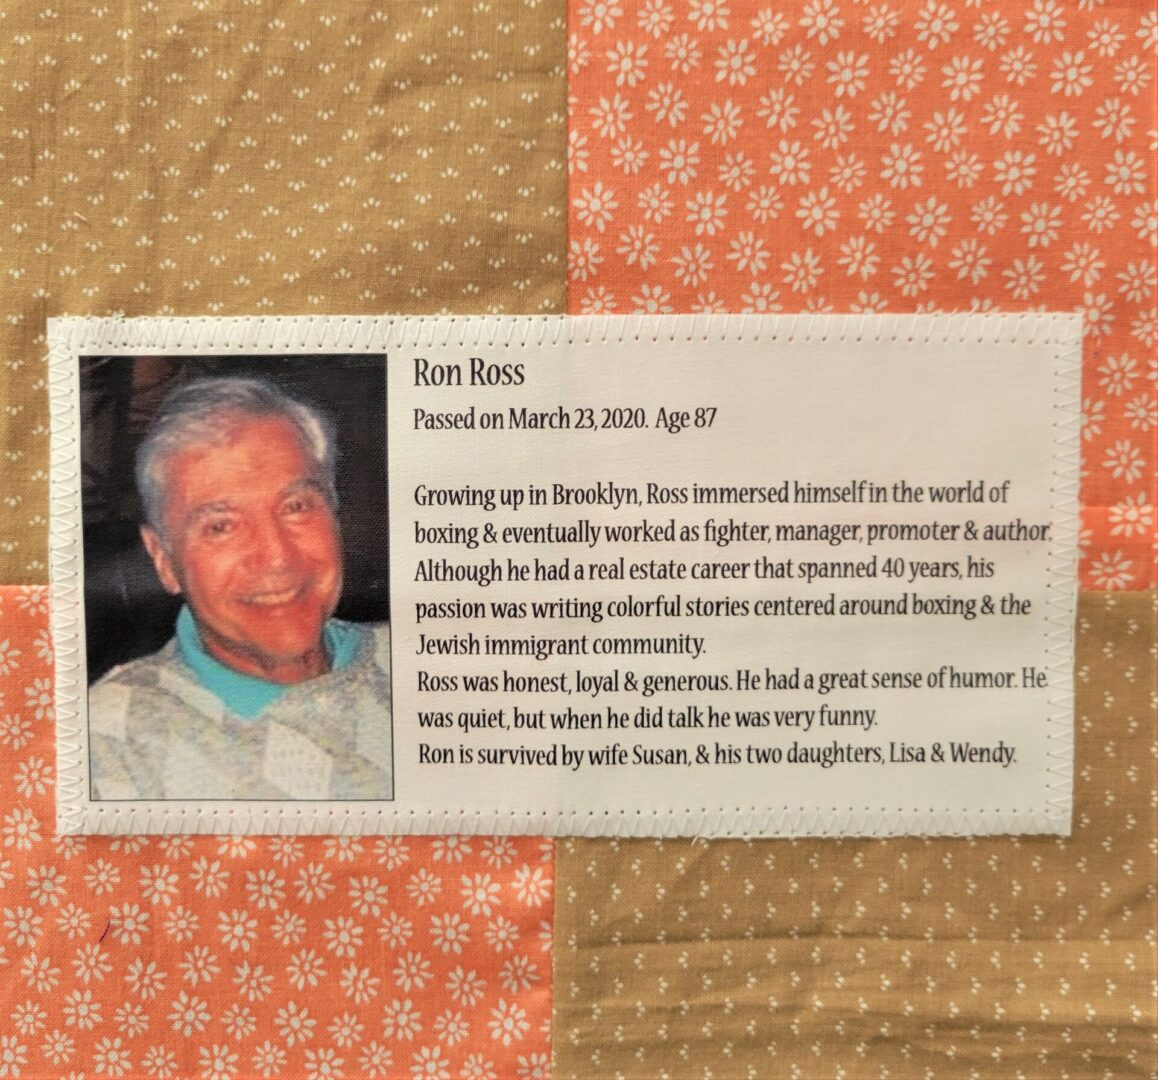 IN MEMORY OF RON ROSS - MARCH 23, 2020